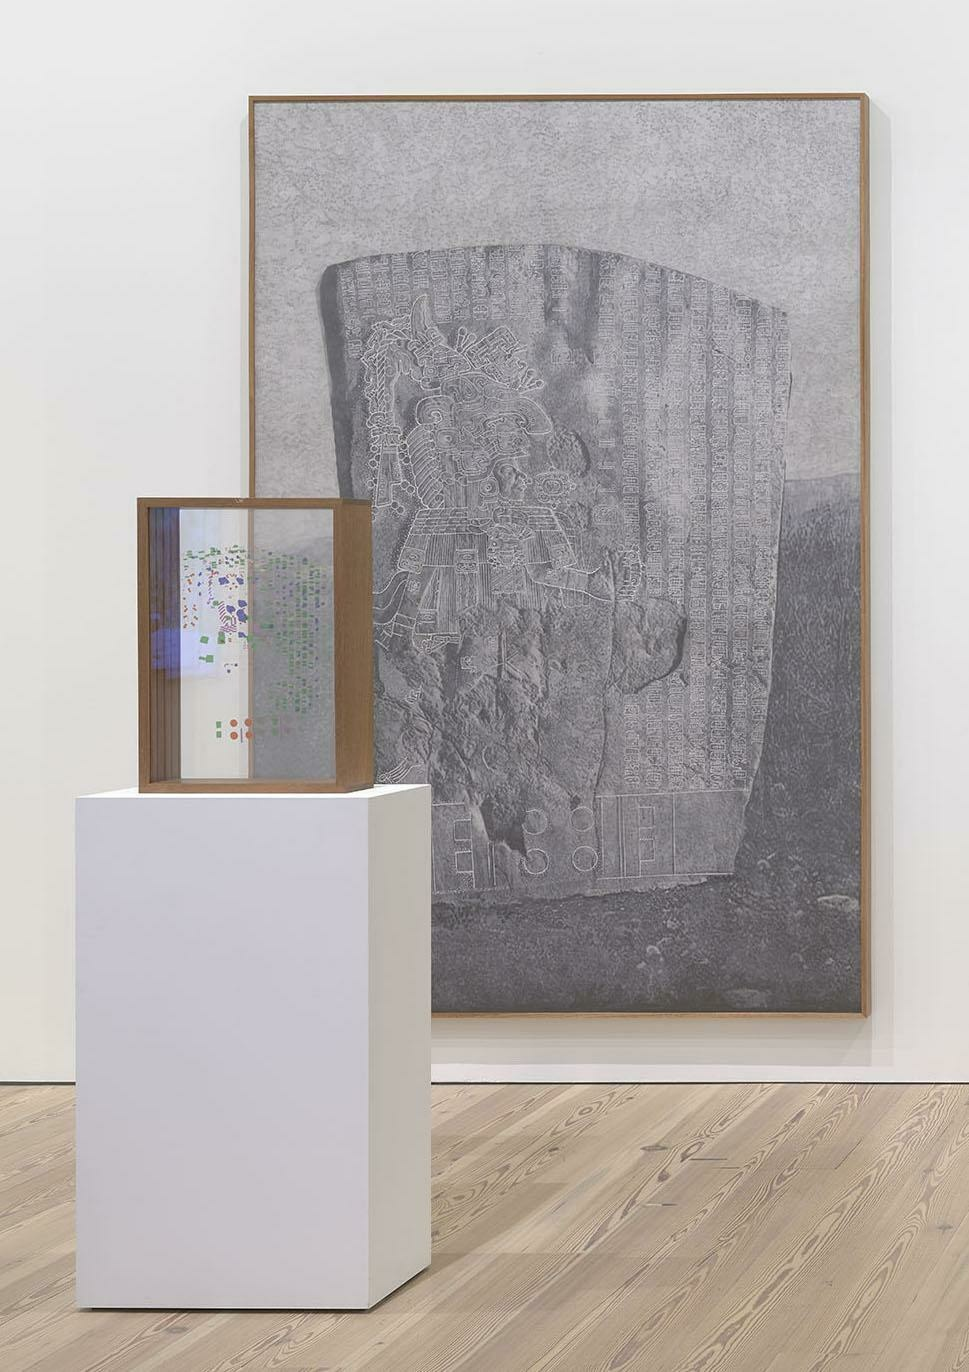 A meticulous graphite drawing of La Mojarra Stela sits behind a wooden box of plexiglass slides with colorful characters